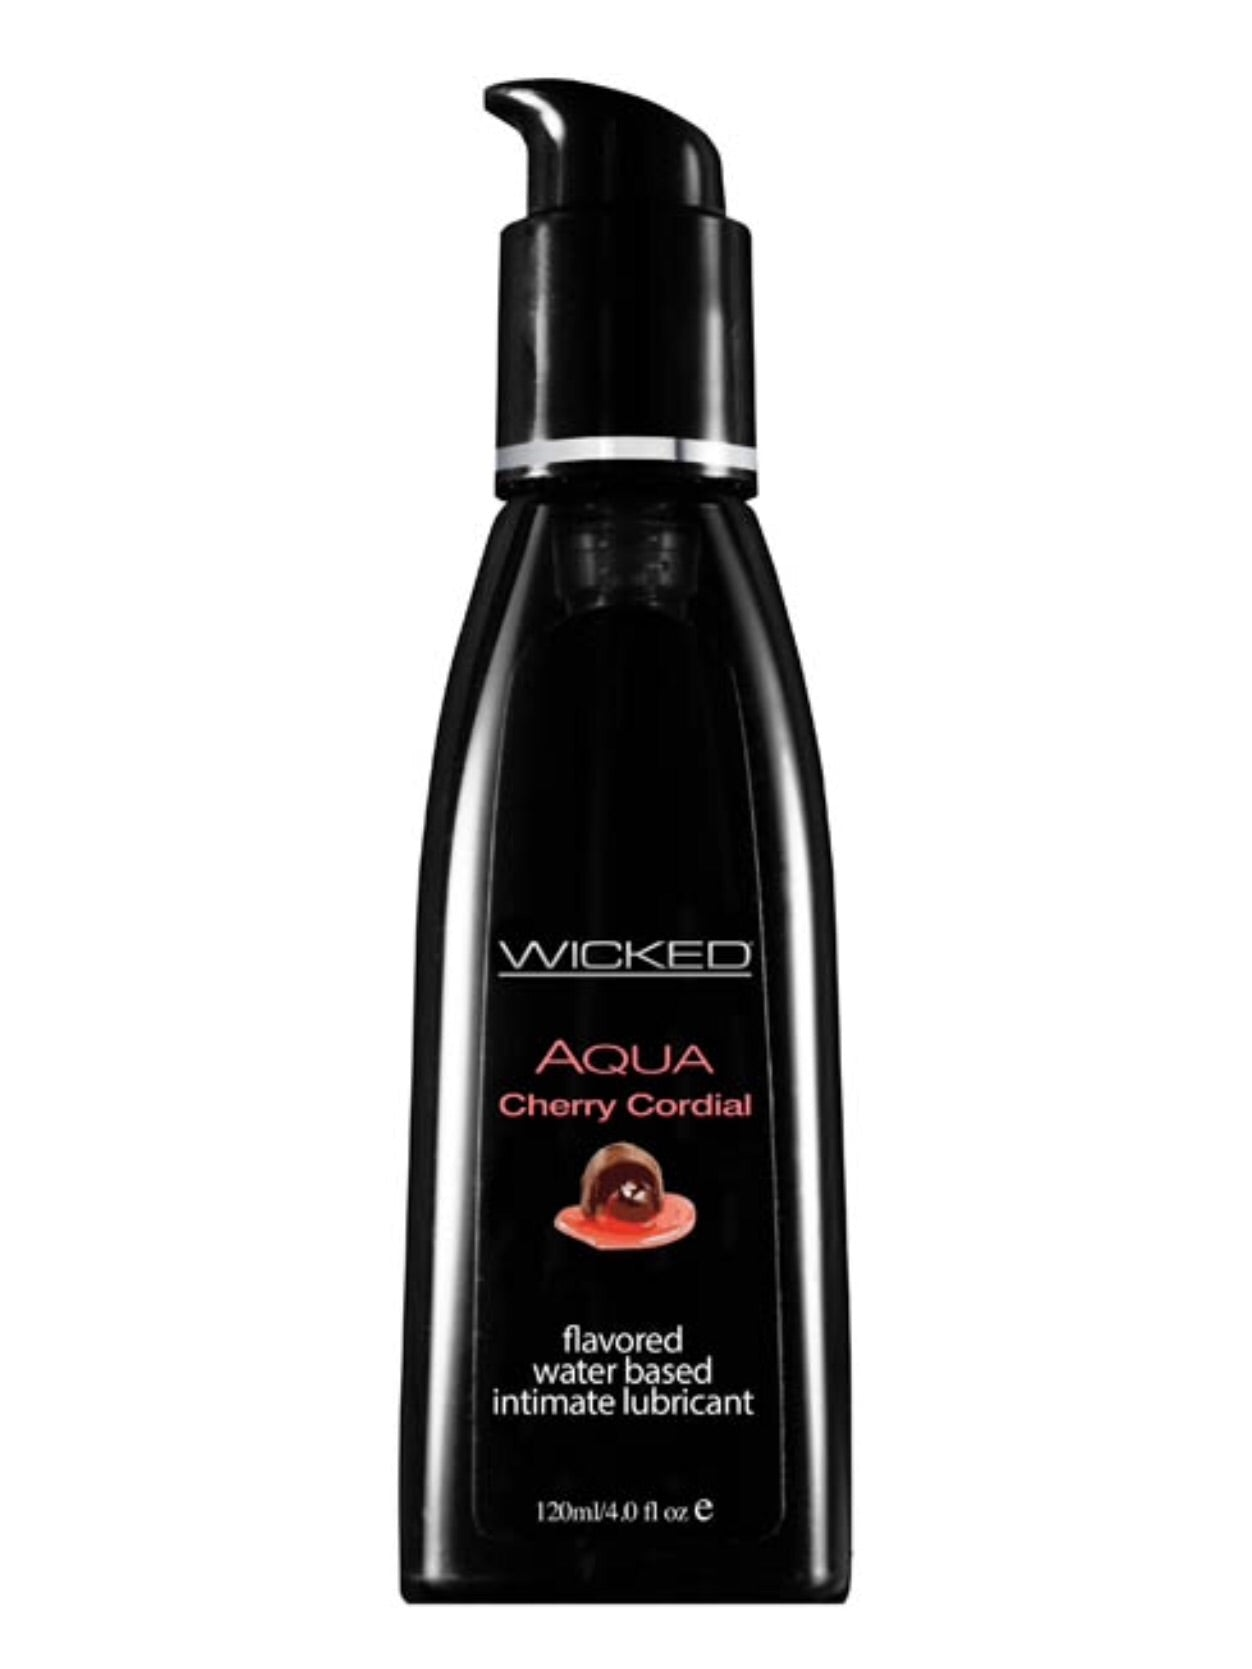 Wicked Aqua Cherry Cordial 120ml